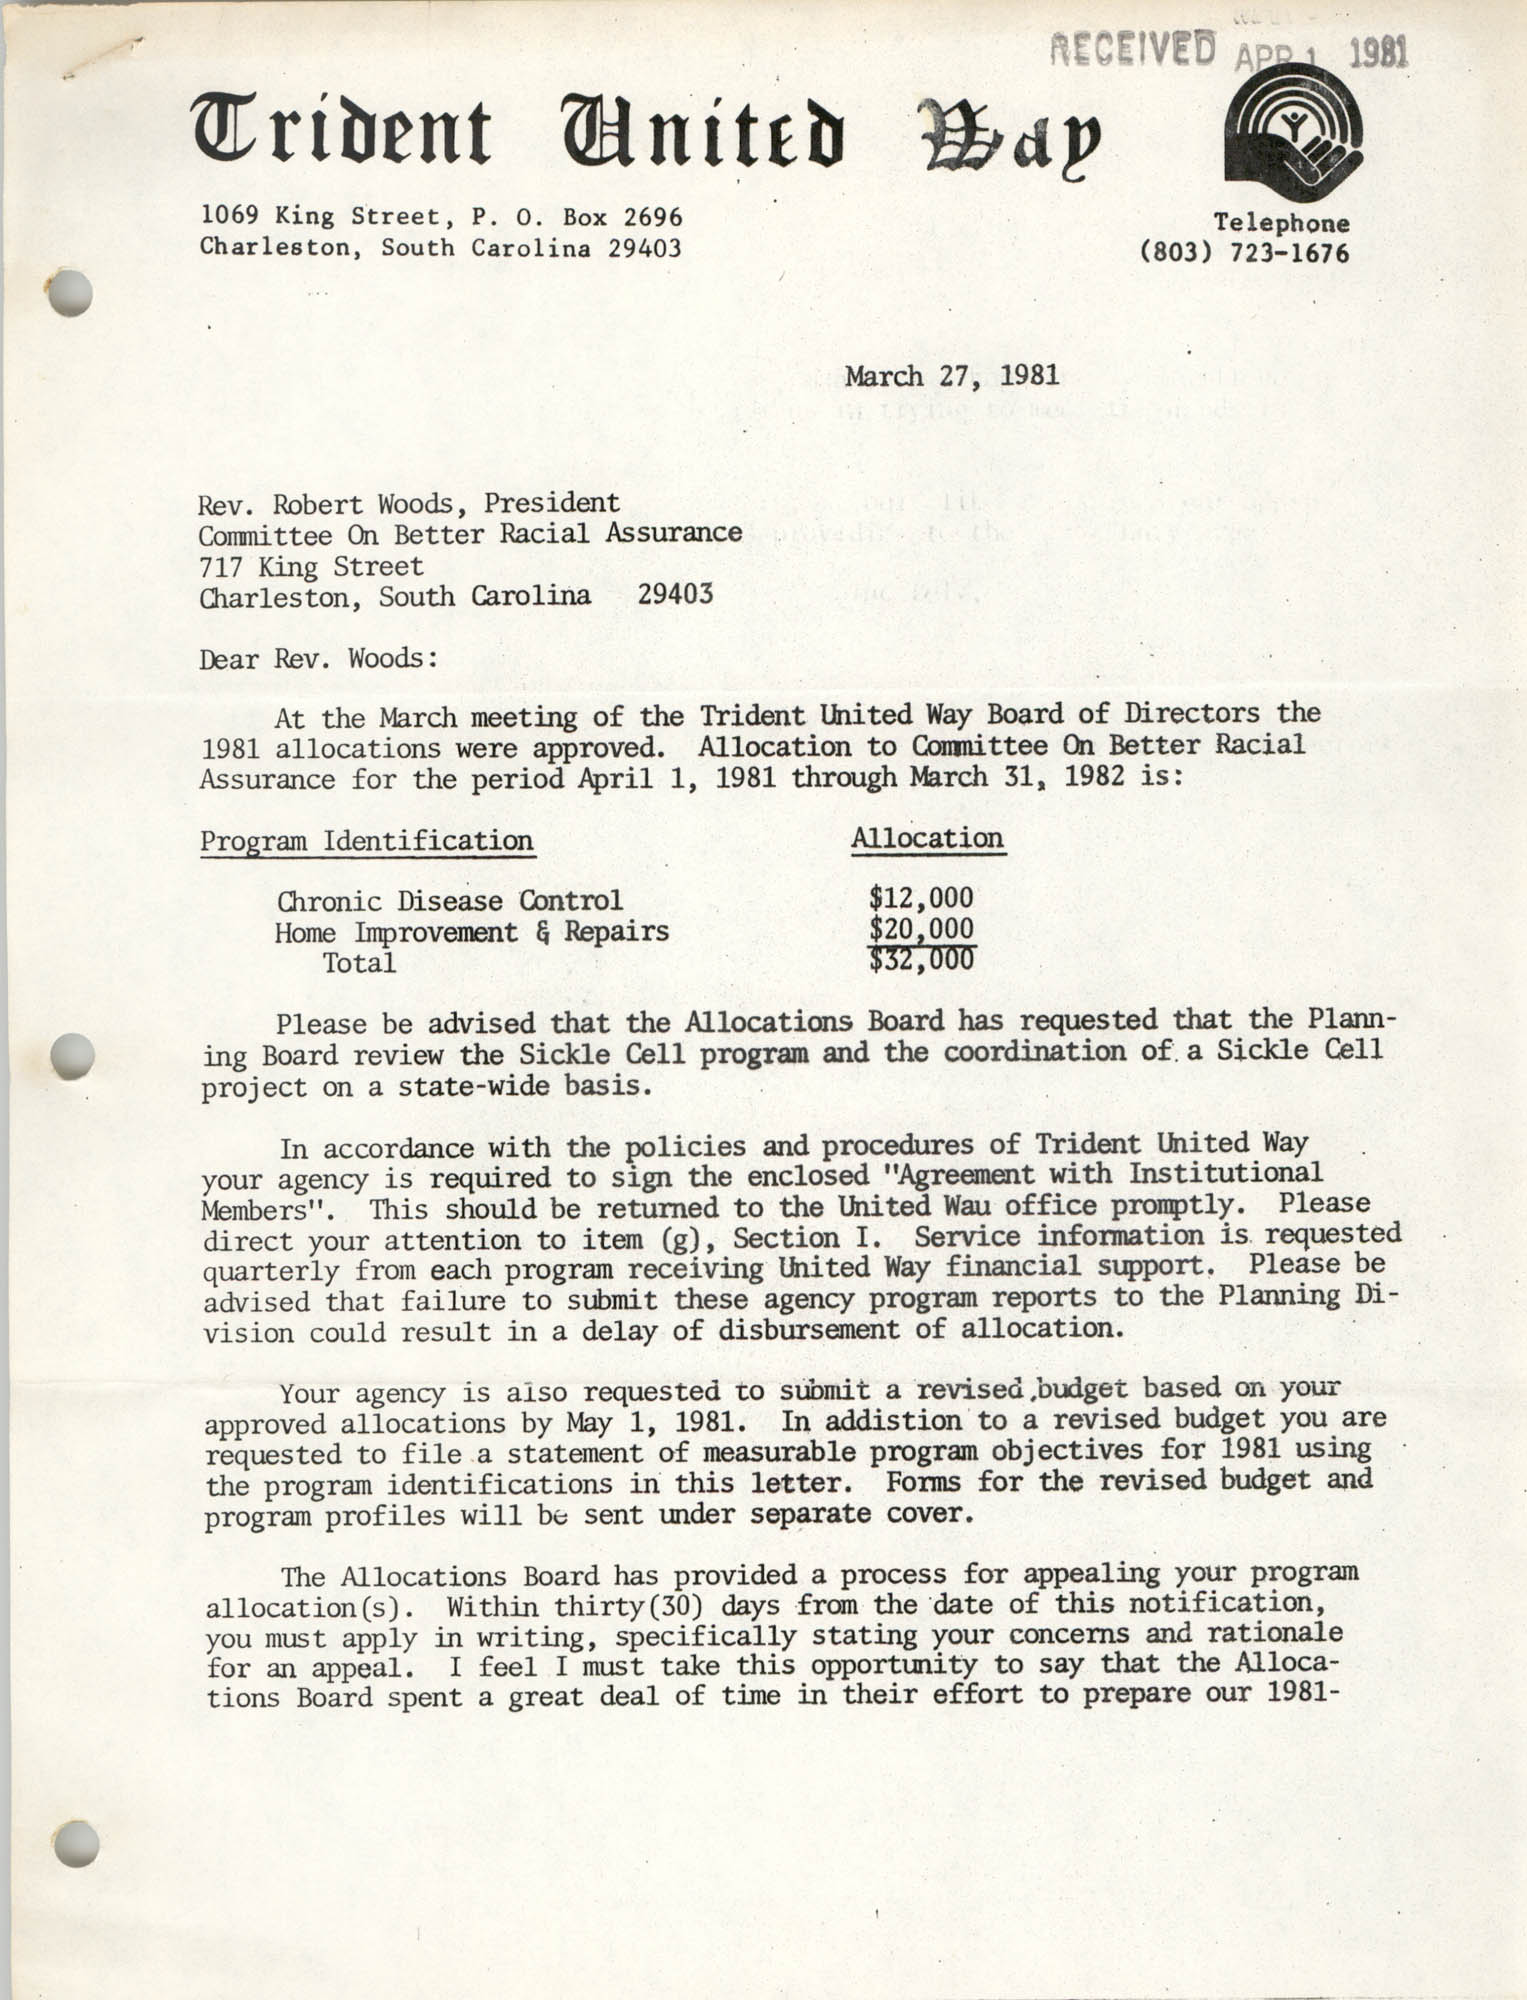 Letter from Hugh C. Lane, Jr. to Robert Woods, March 27, 1981